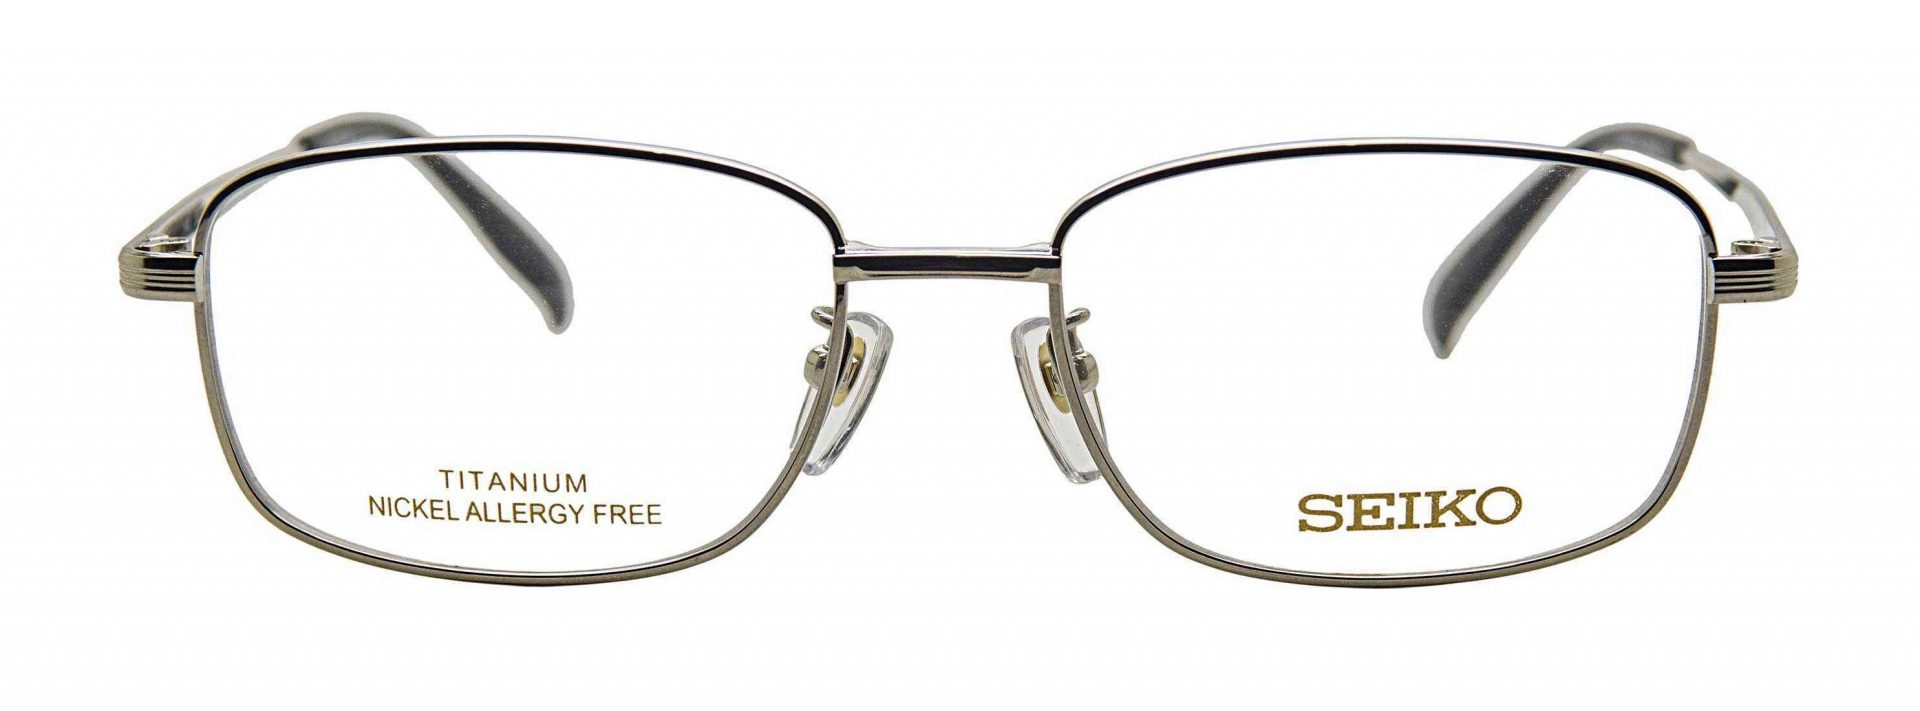 Seiko spectacles T1139 01 2970x1100